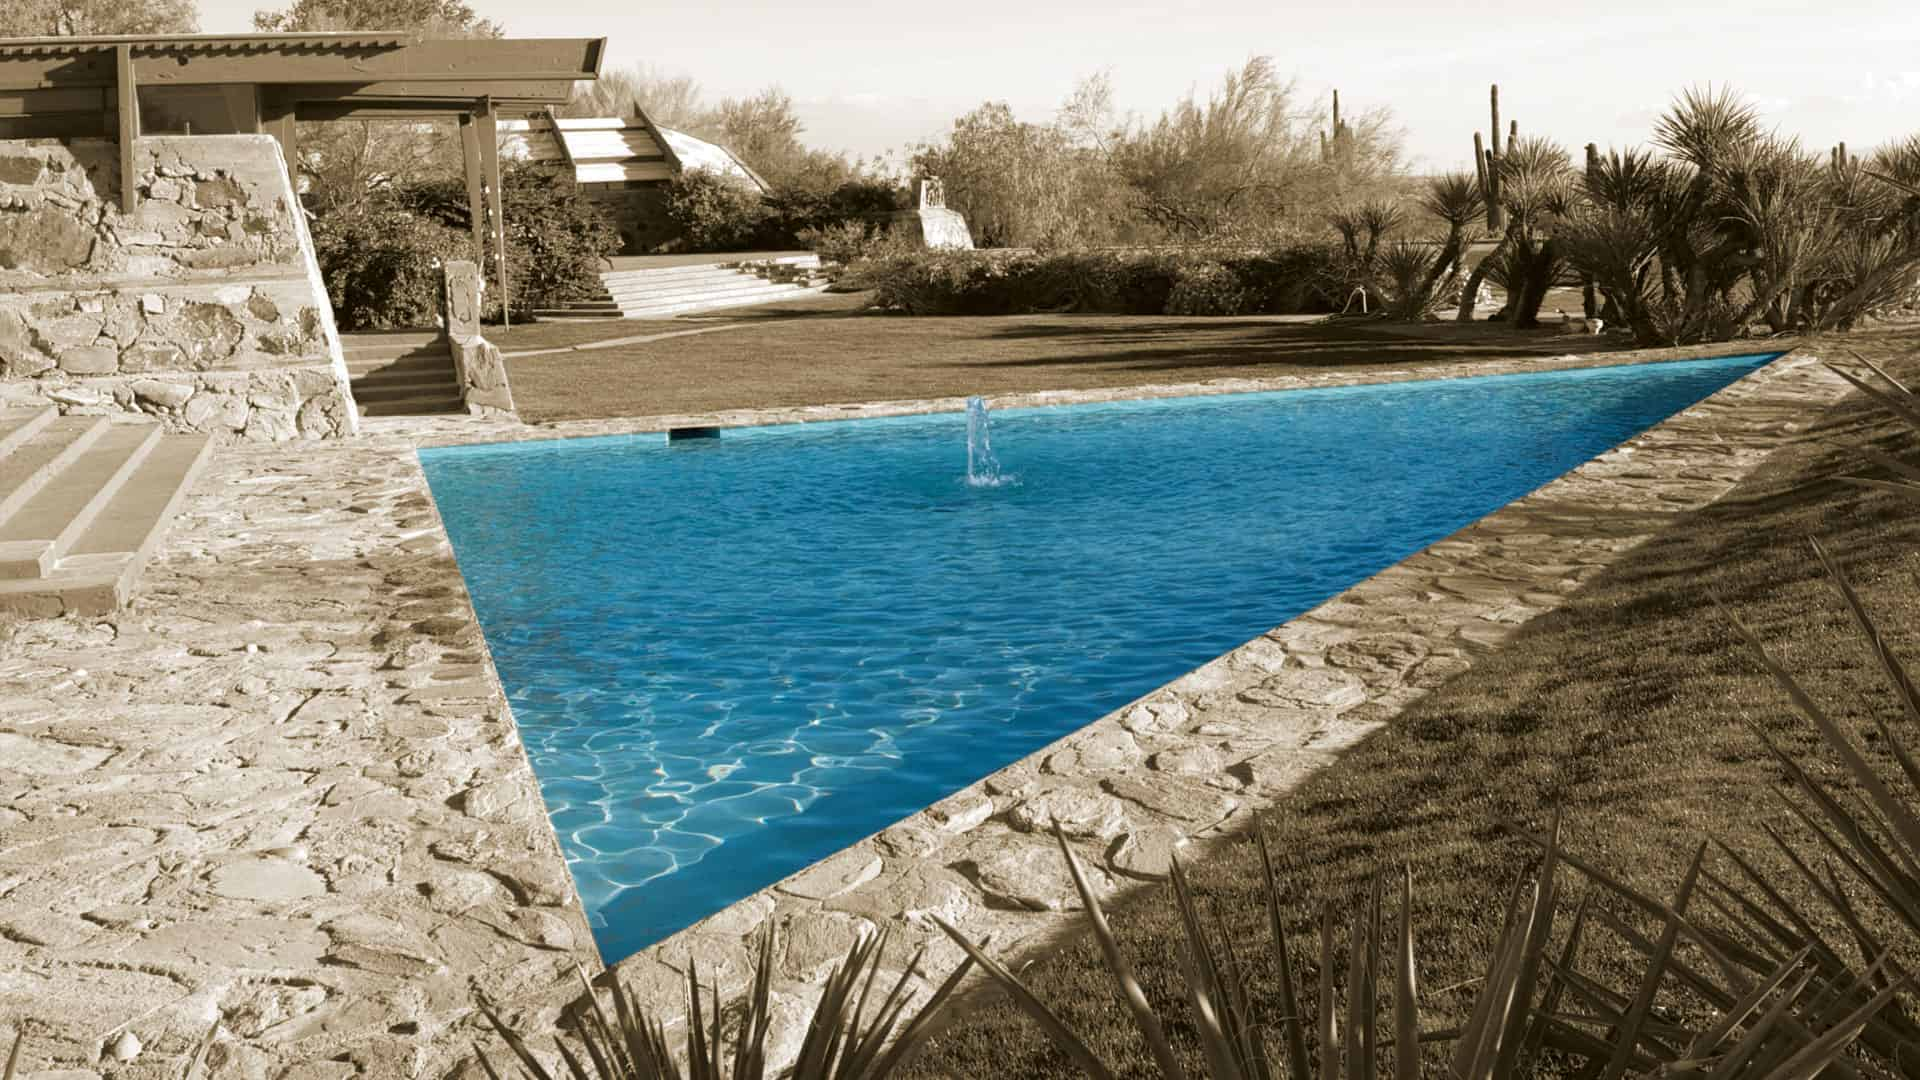 Pool remodeling and resurfacing experts phoenix arizona for Pool resurfacing phoenix az